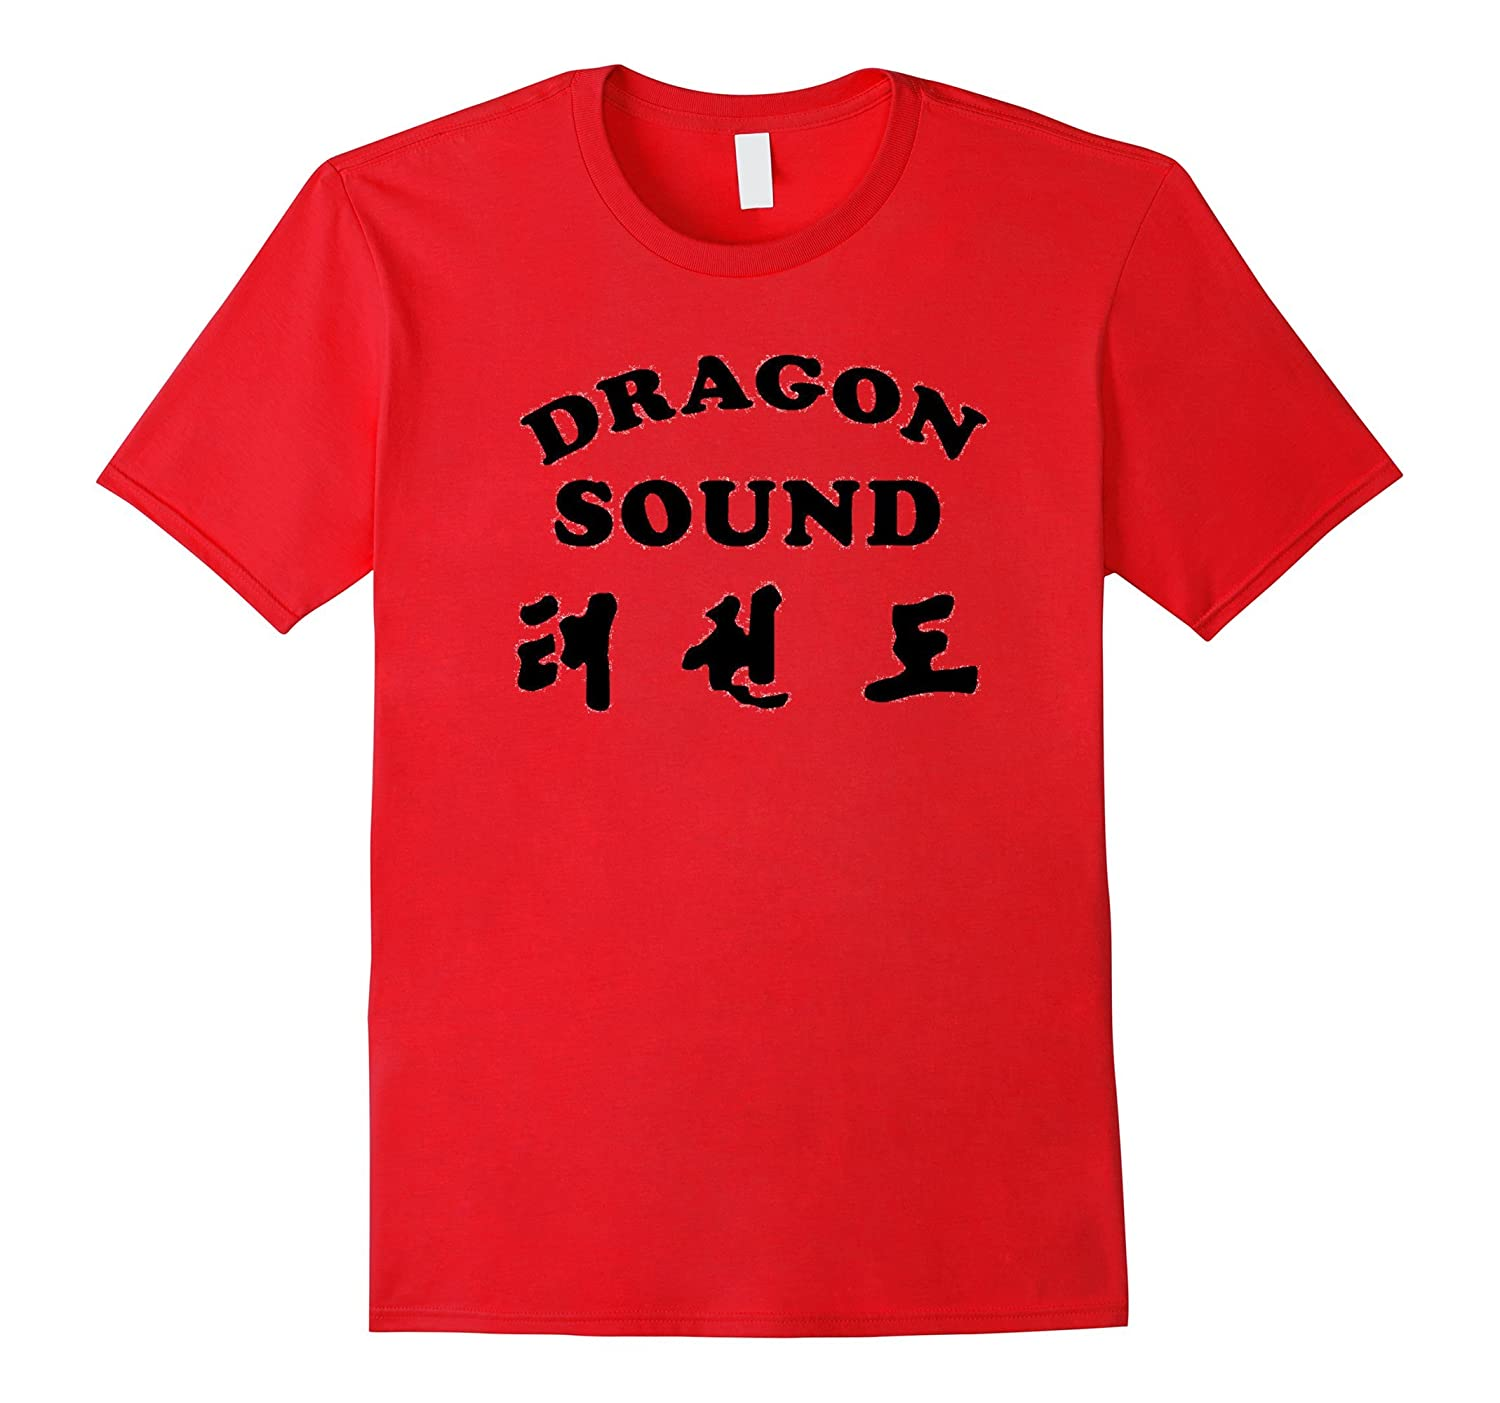 Miami Connection Sound Dragon Shirt Tshirt Tee-T-Shirt